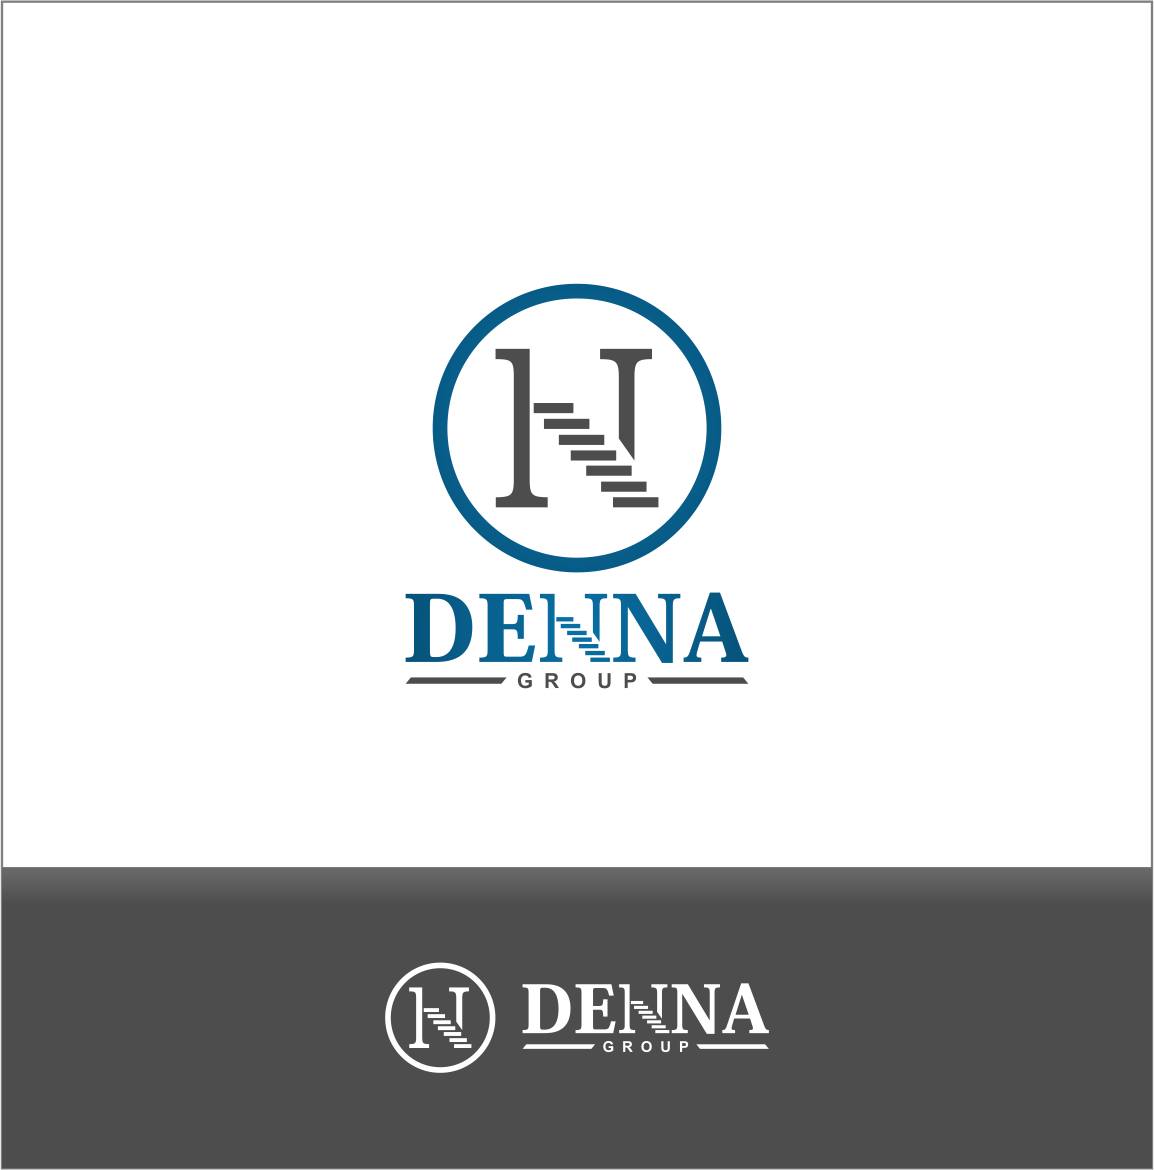 Logo Design by Private User - Entry No. 319 in the Logo Design Contest Denna Group Logo Design.